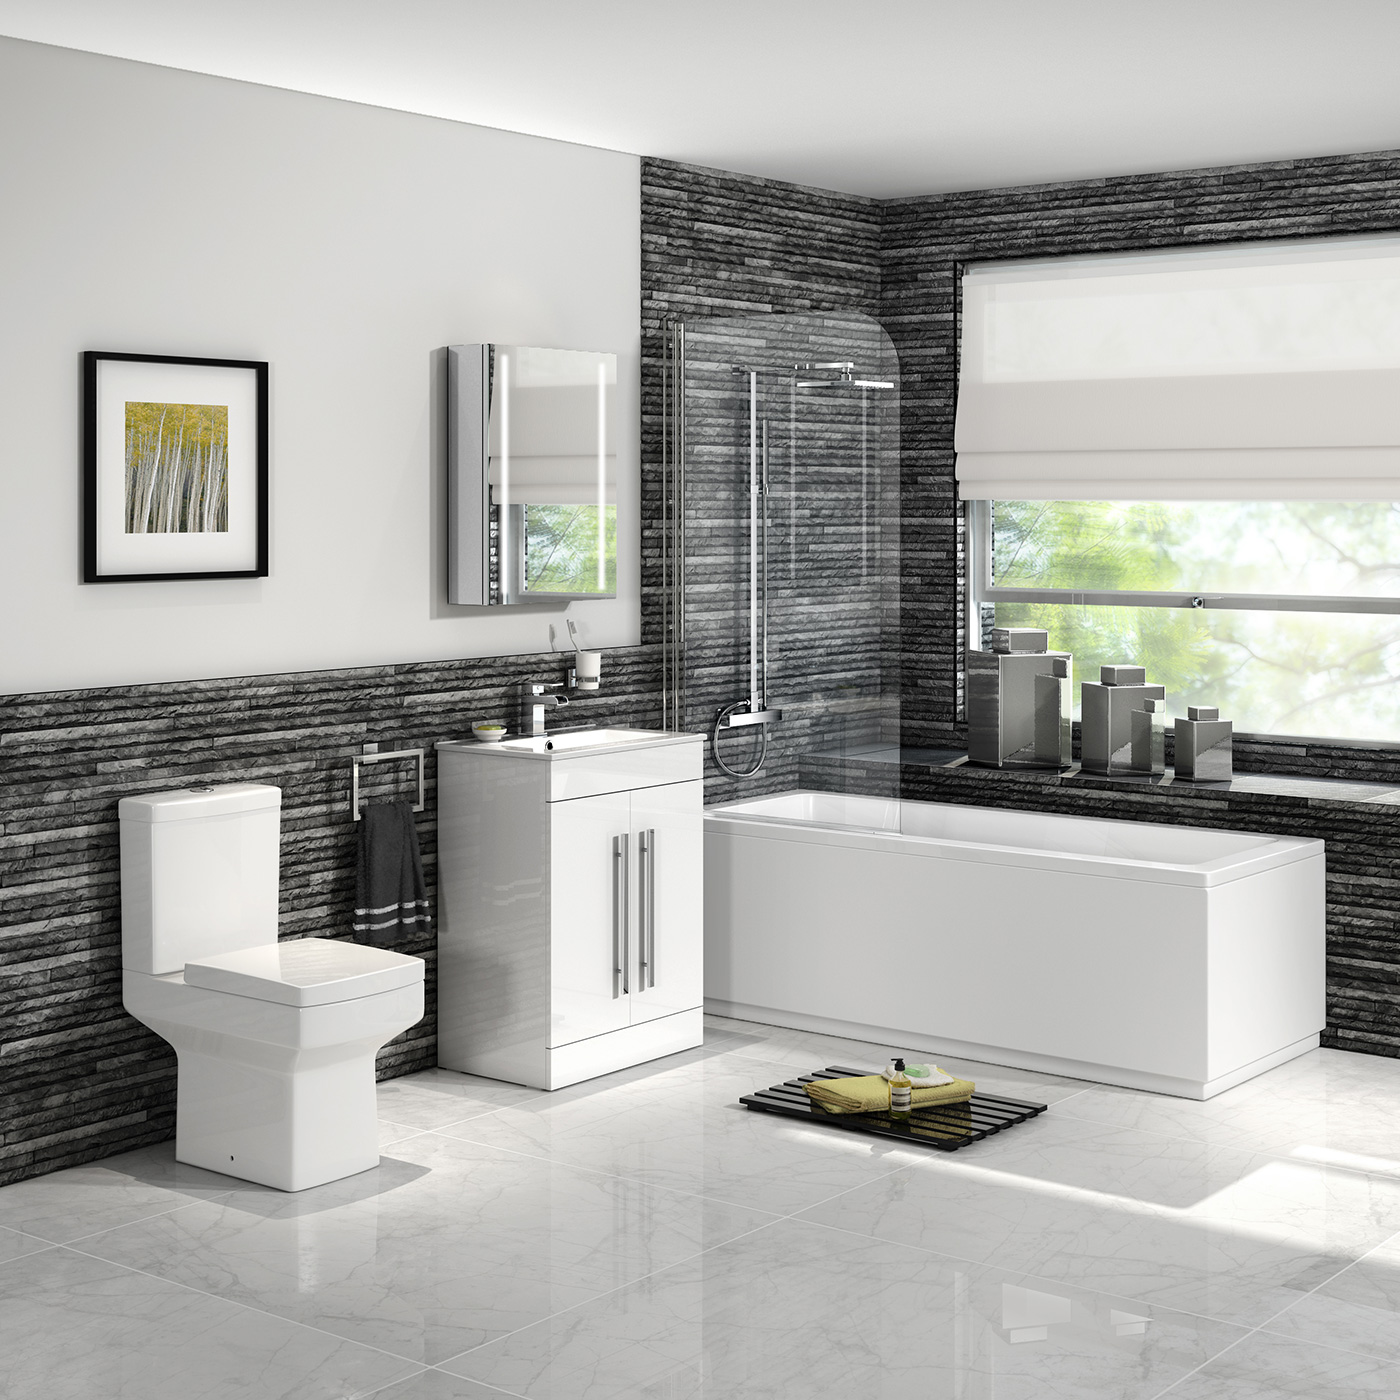 Bathroom suites accessories woodhouse sturnham ltd plumbing merchants in peterborough Bathroom design winchester uk